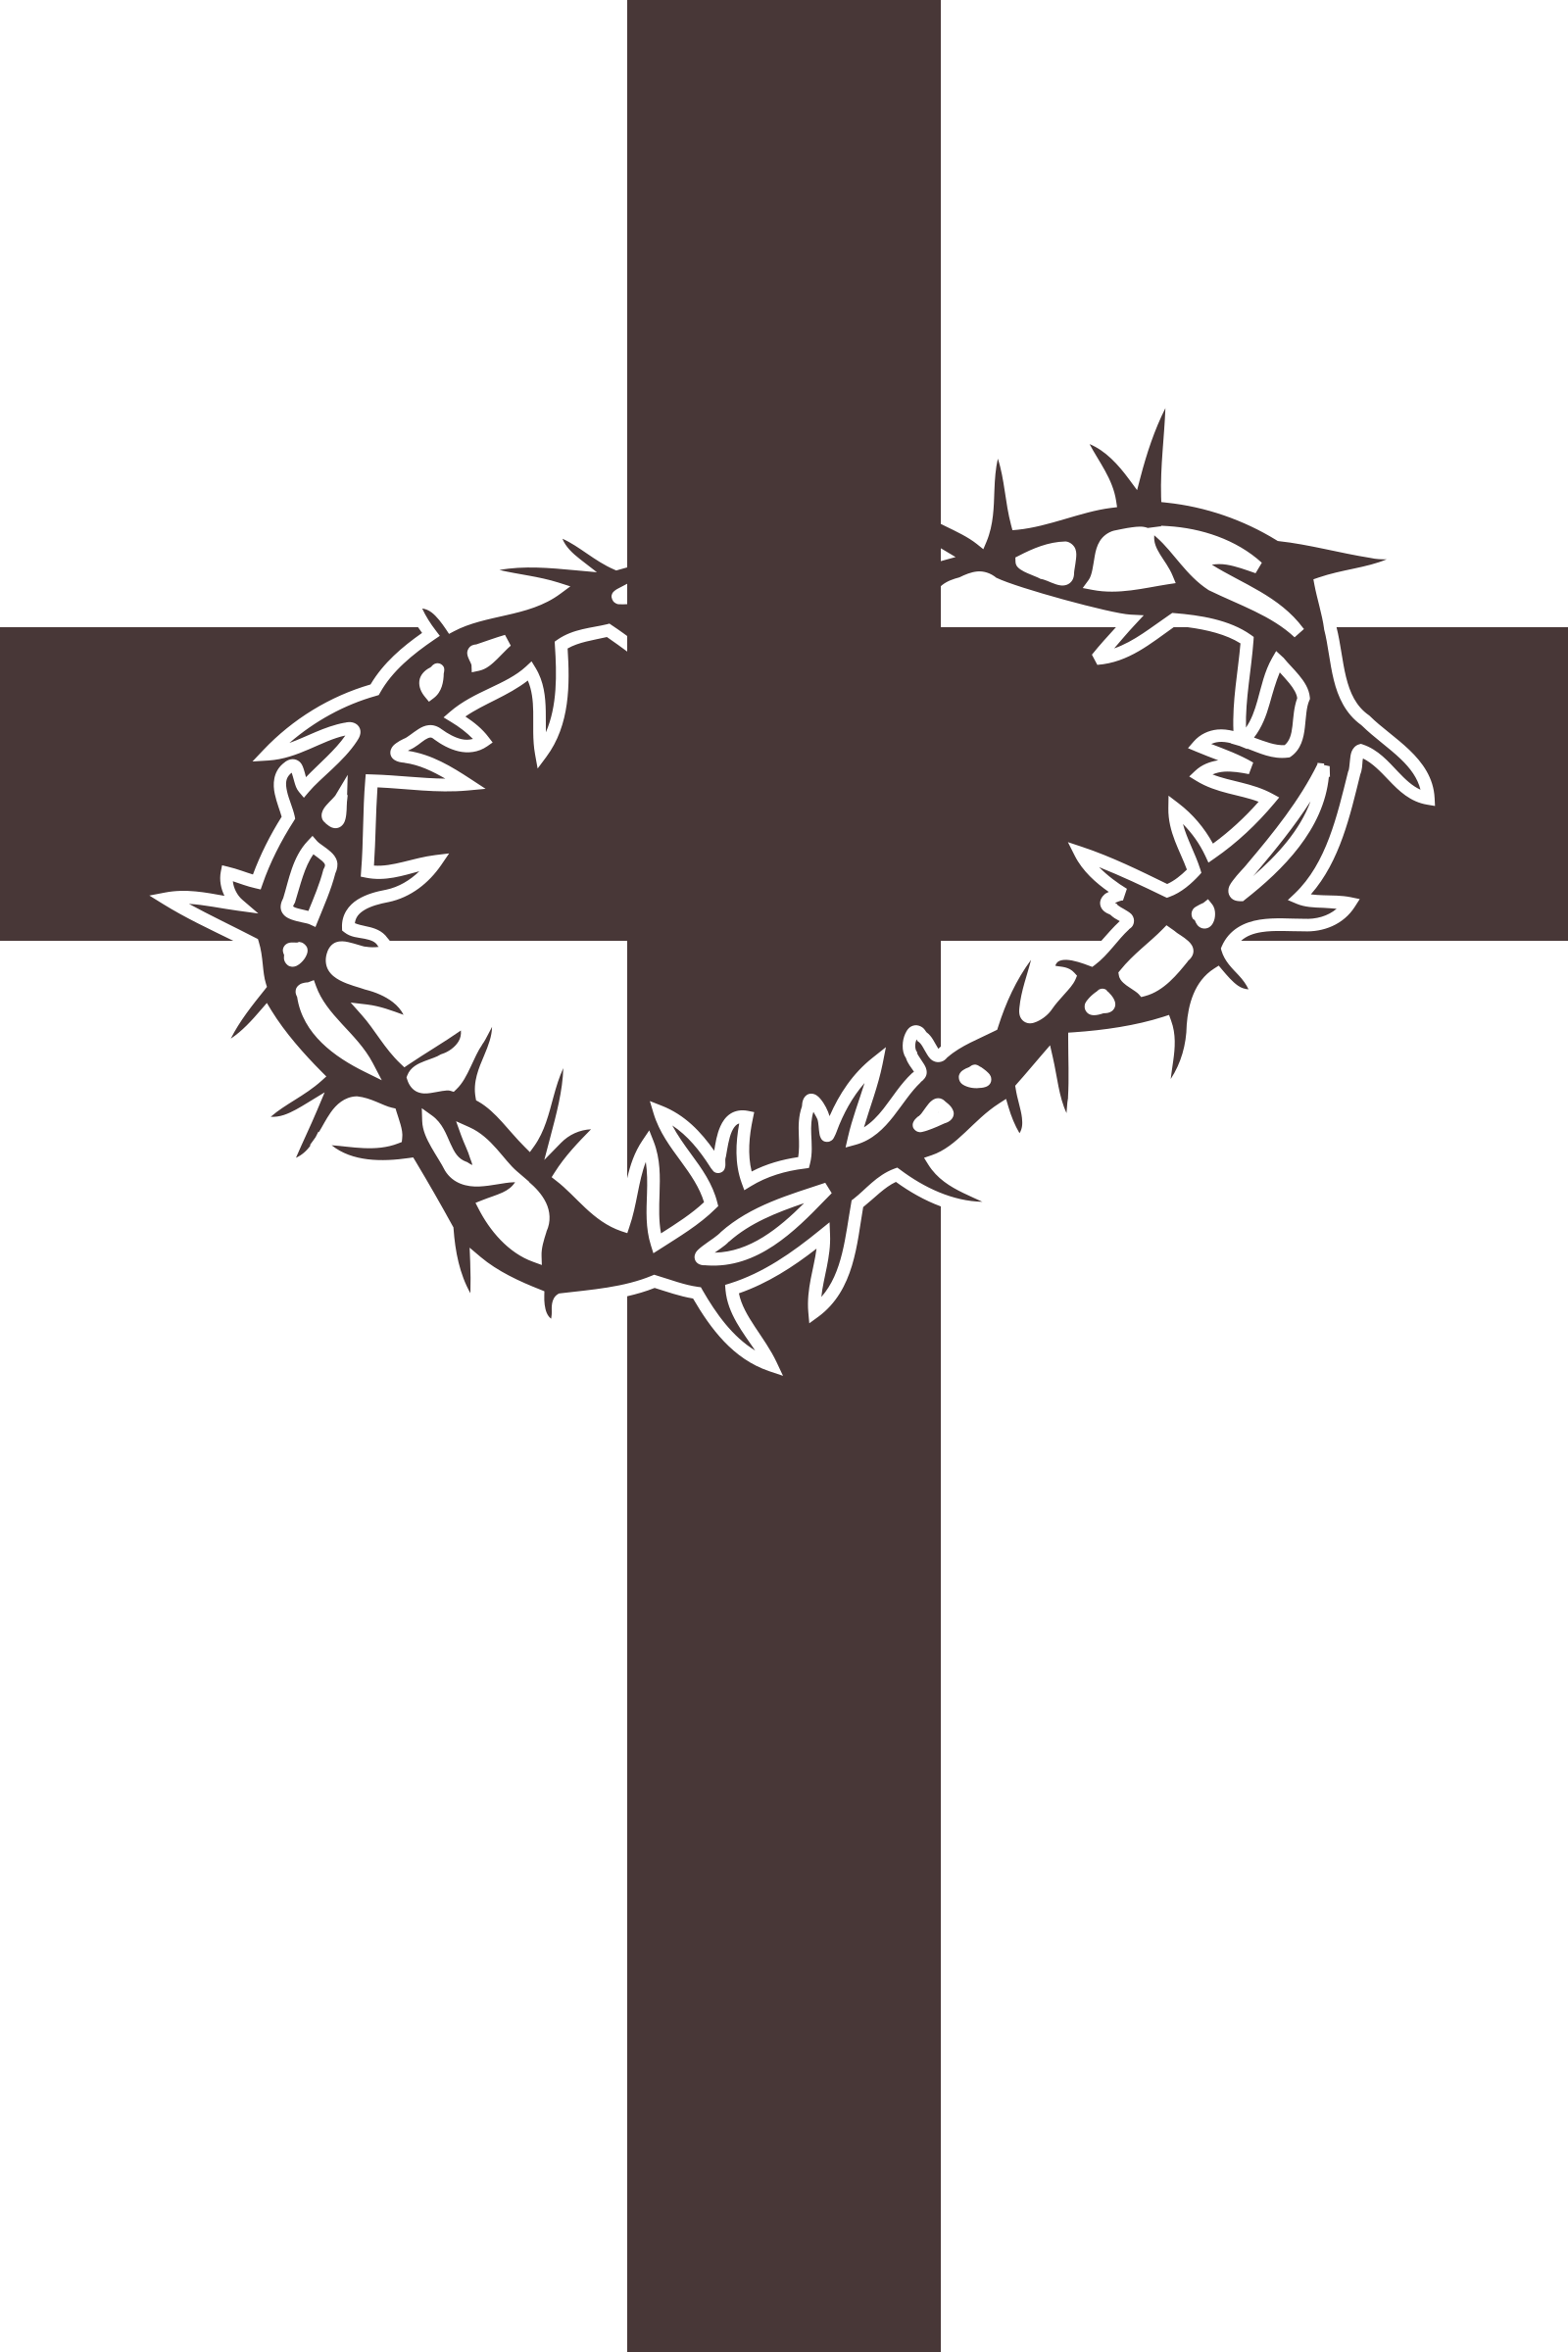 graphic freeuse download Cross clipart. And thorns icon big